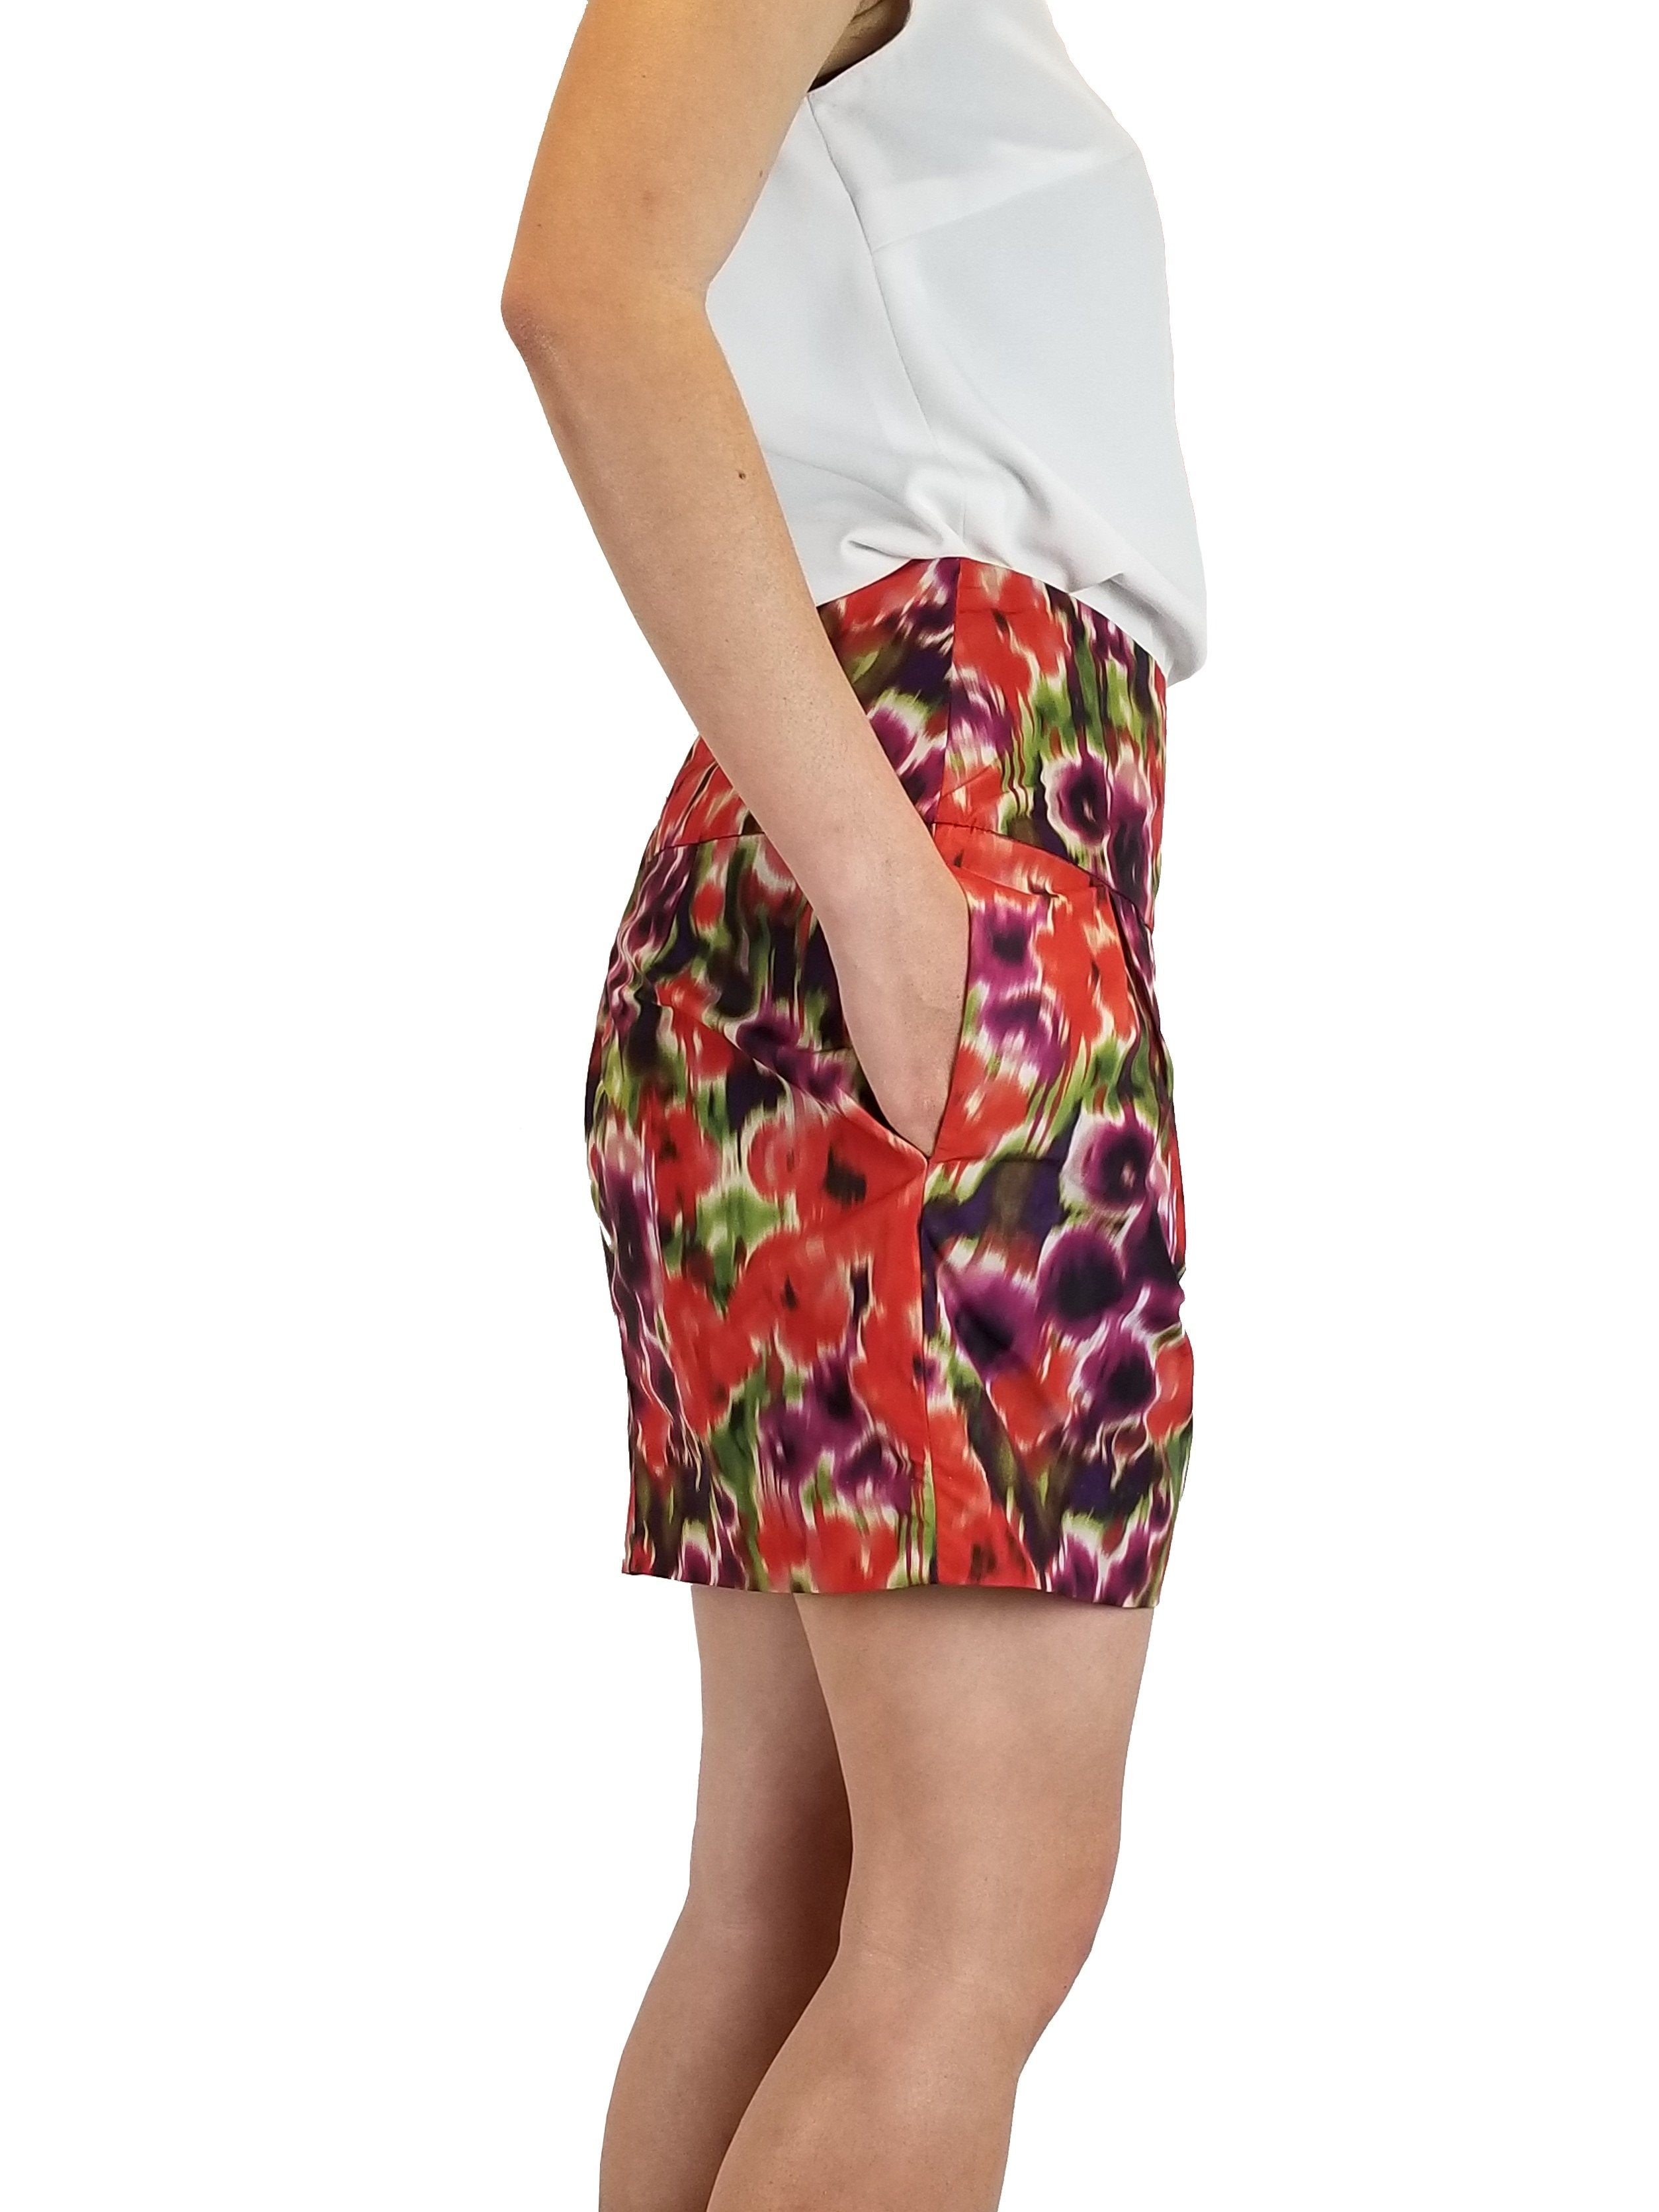 Bebe tie-die orange mini skirt, Vibrant color for the vibrant you!, Orange, Shell: 100% Polyester. Lining: 97% Polyester, 3% Spandex, skirt, floral purple and orange mini skirt, fashion, floral multi-colored mini skirt